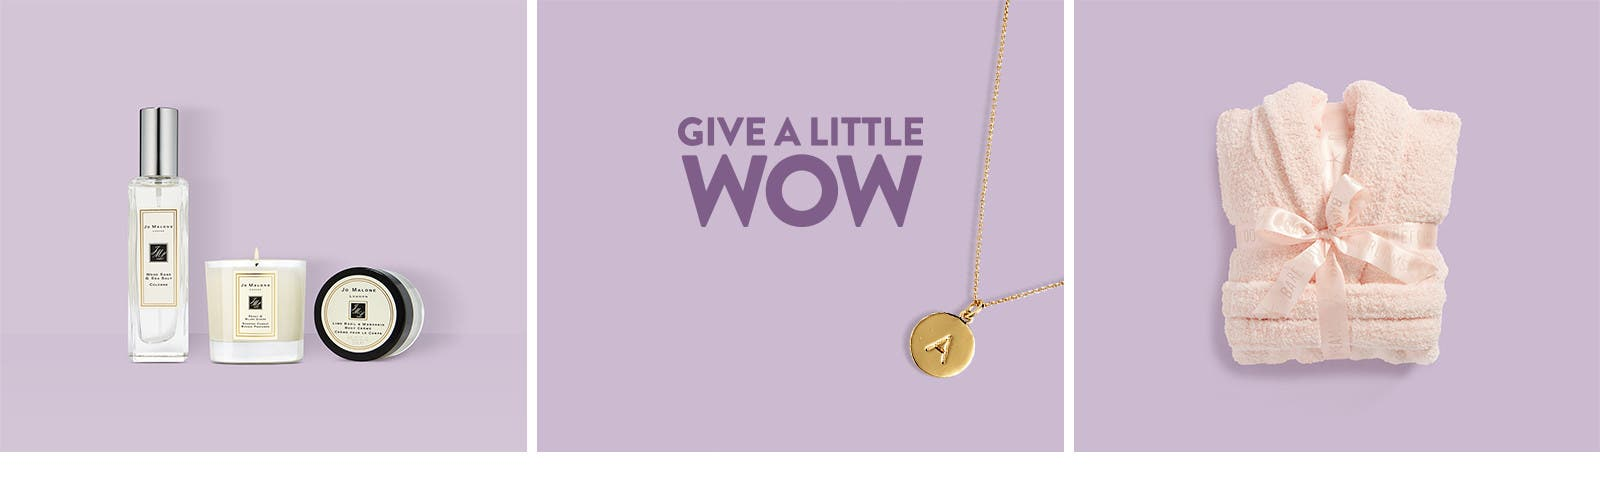 Give a Little Wow: Mother's Day is Sunday, May 12.